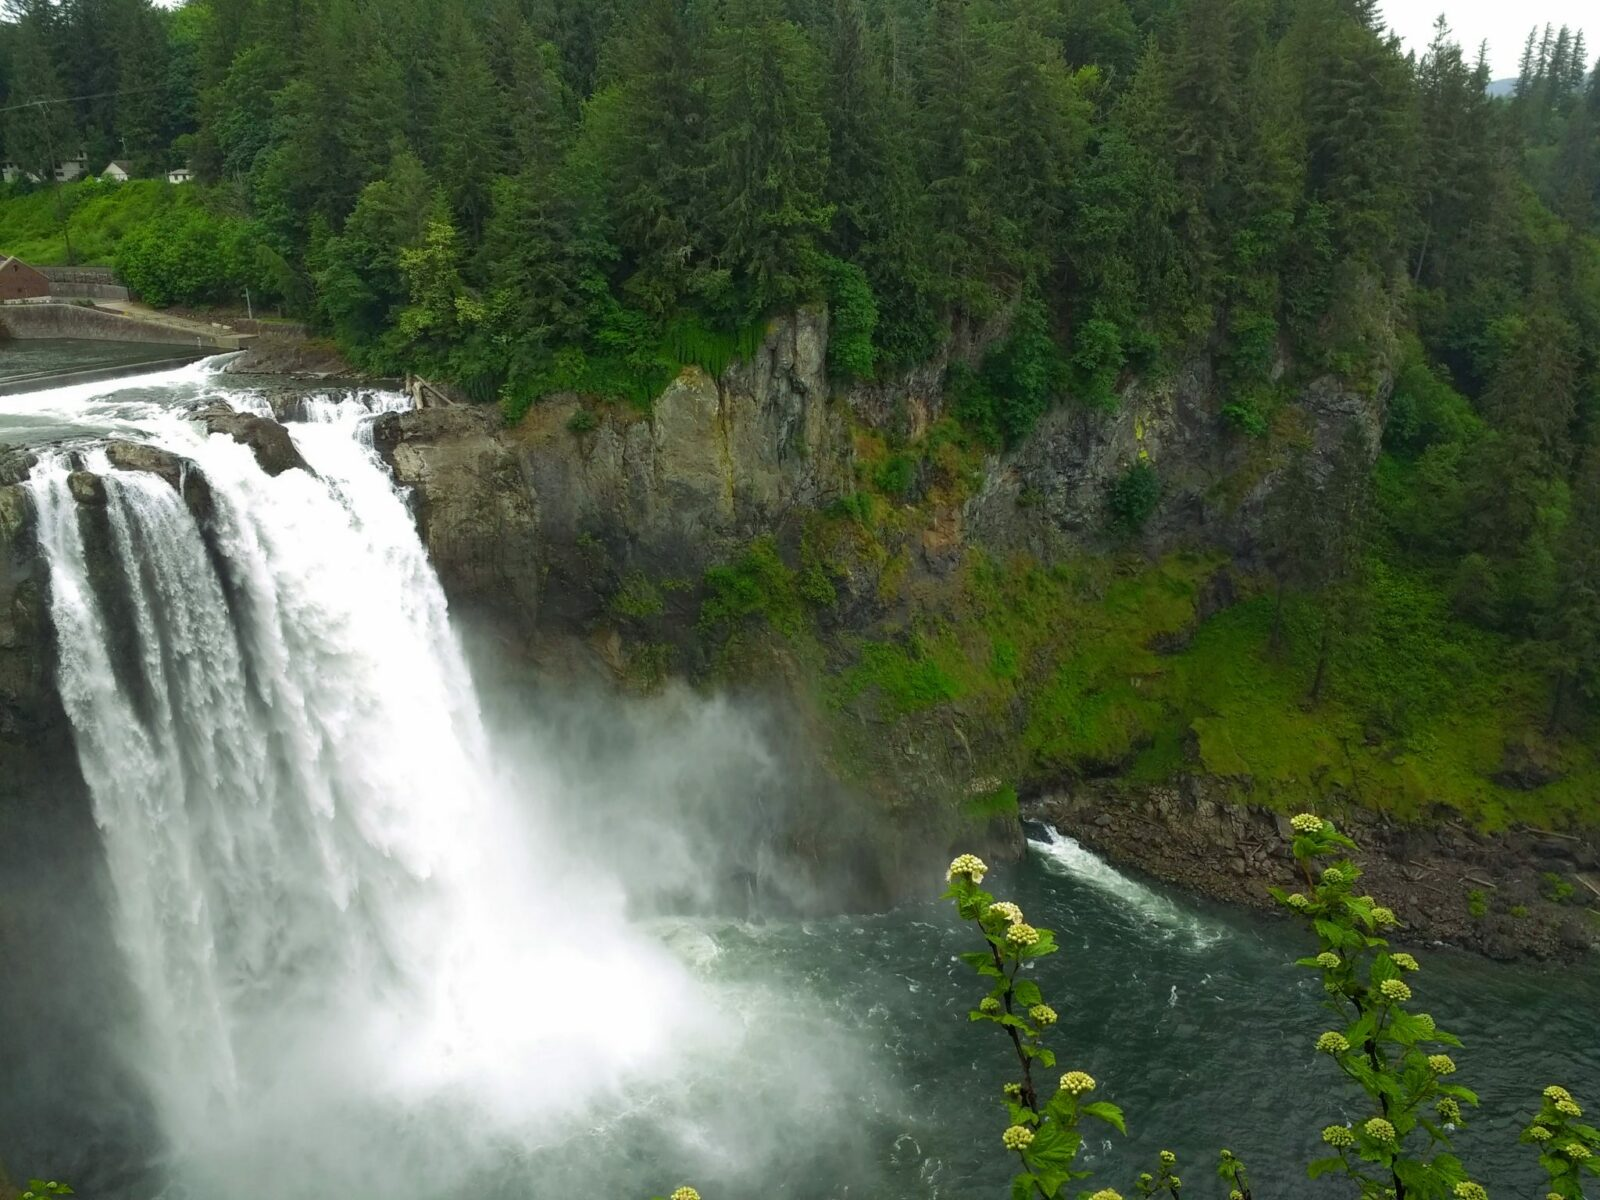 A wide and high waterfall in washington state plunges over mossy rocks to the river below, surrounded by forest